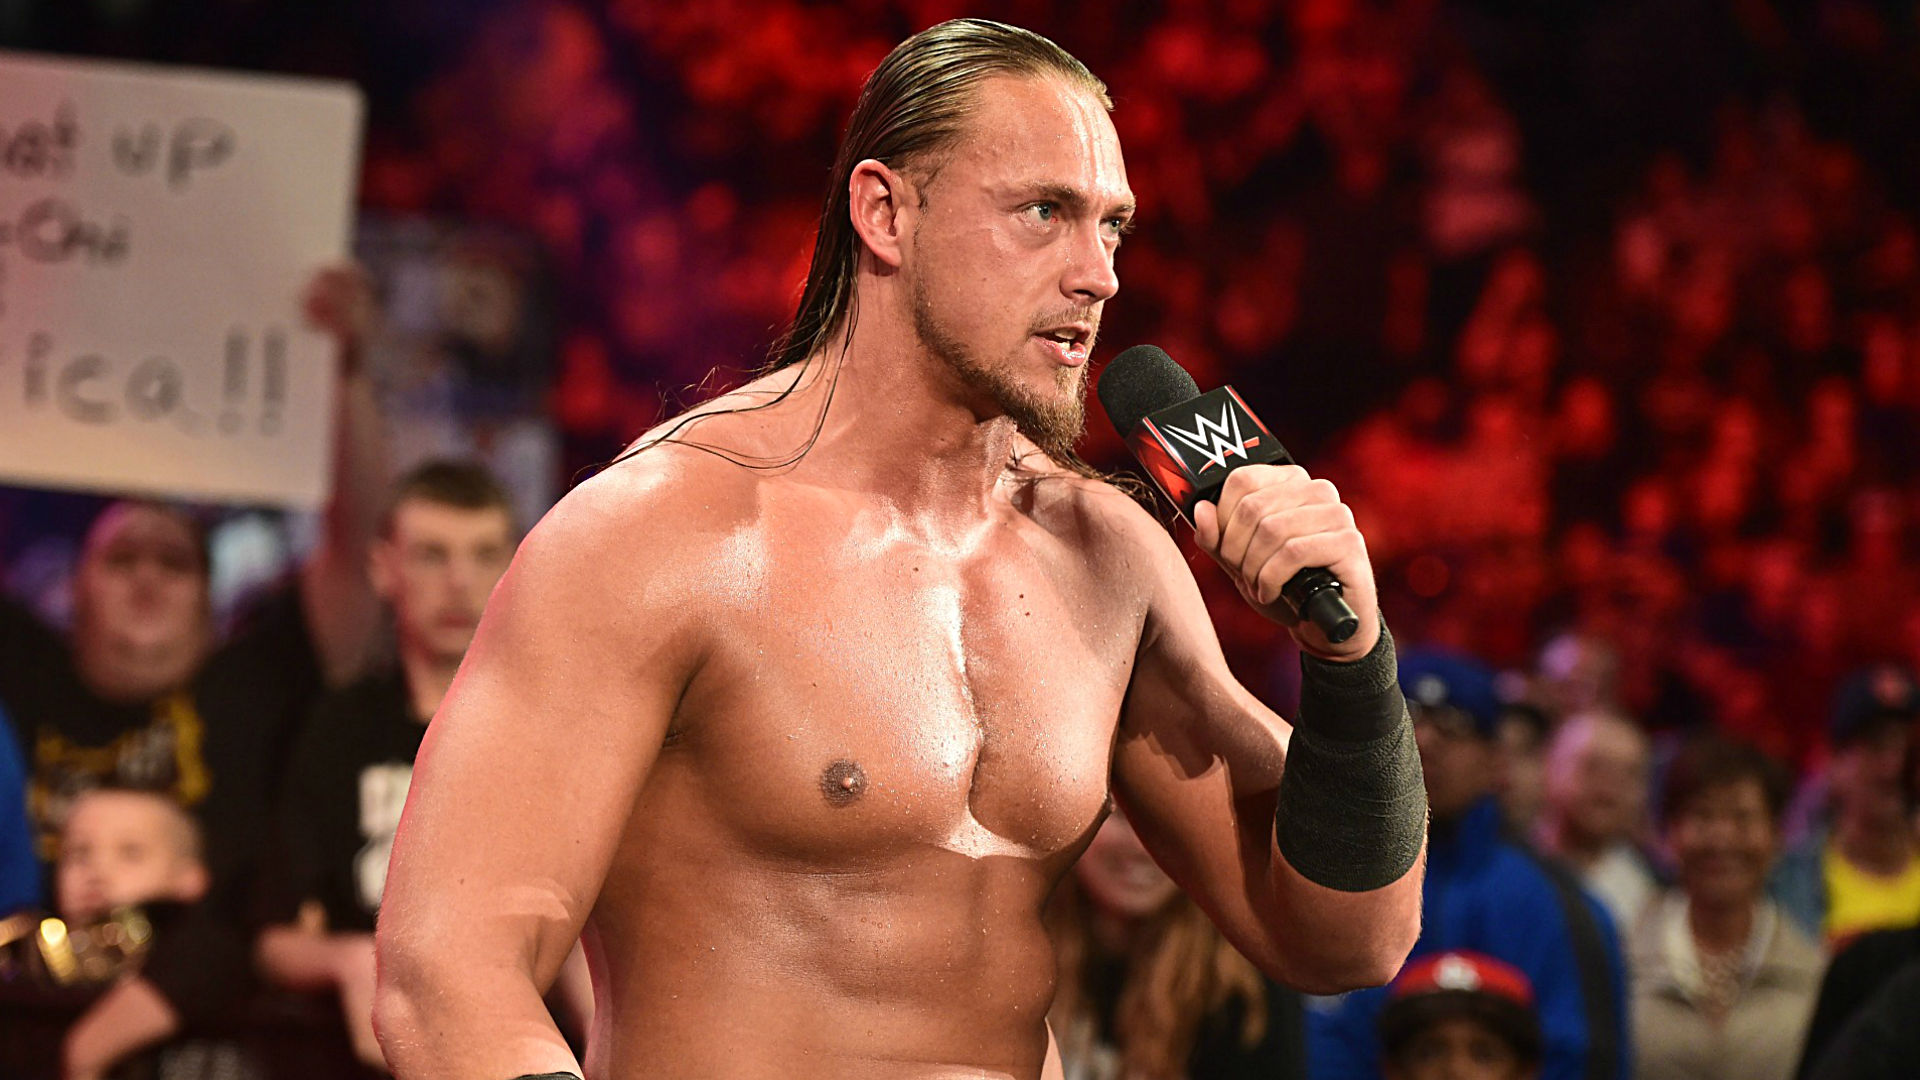 WWE Superstar Big Cass Released from Contract